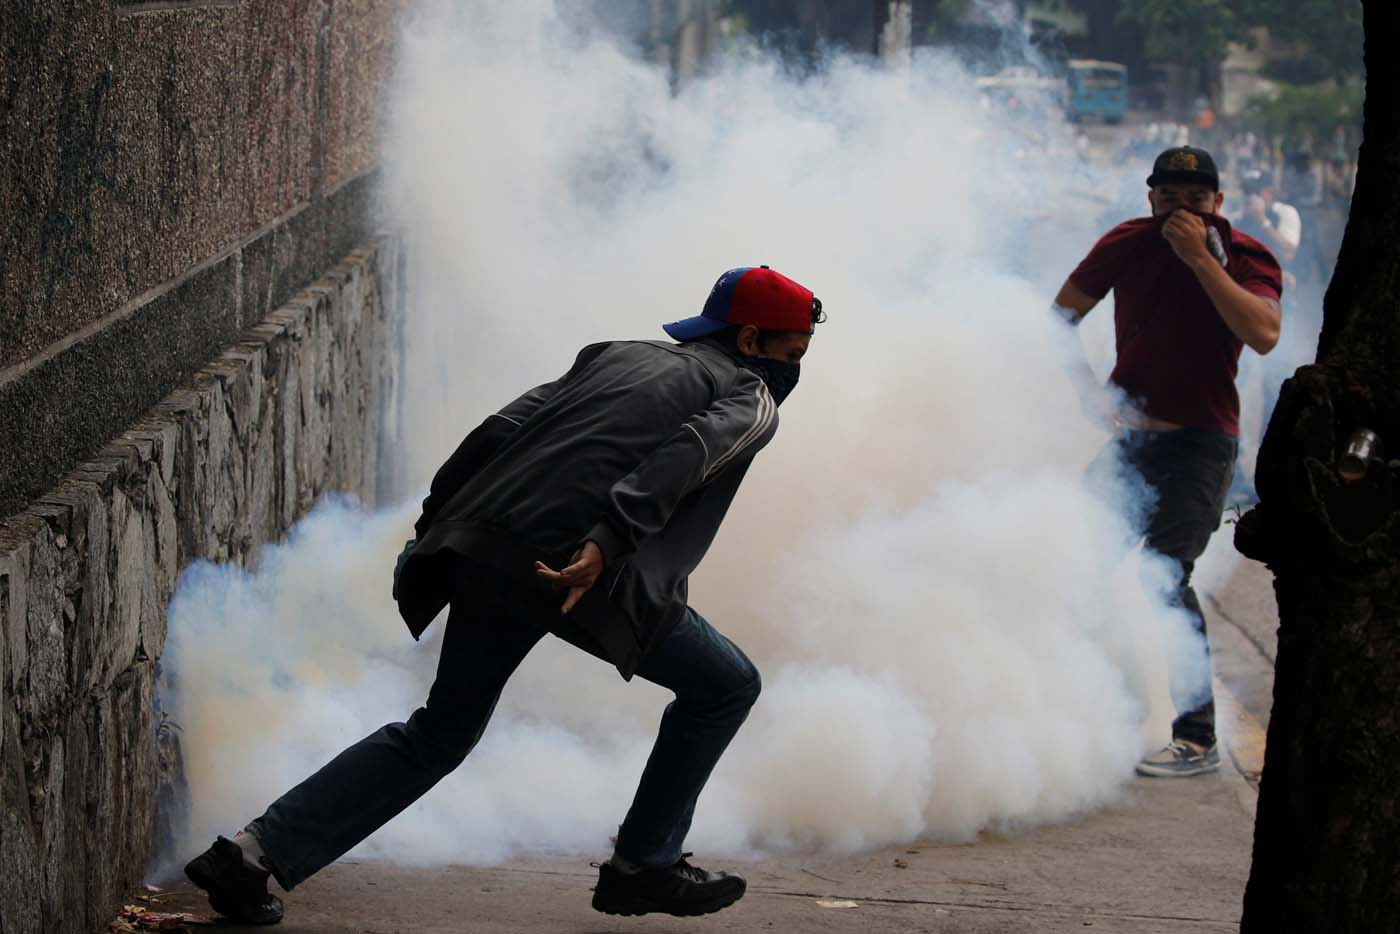 Demonstrators run away from tear gas during a protest against Venezuela's President Nicolas Maduro's government in Caracas, Venezuela May 2, 2017. REUTERS/Carlos Garcia Rawlins